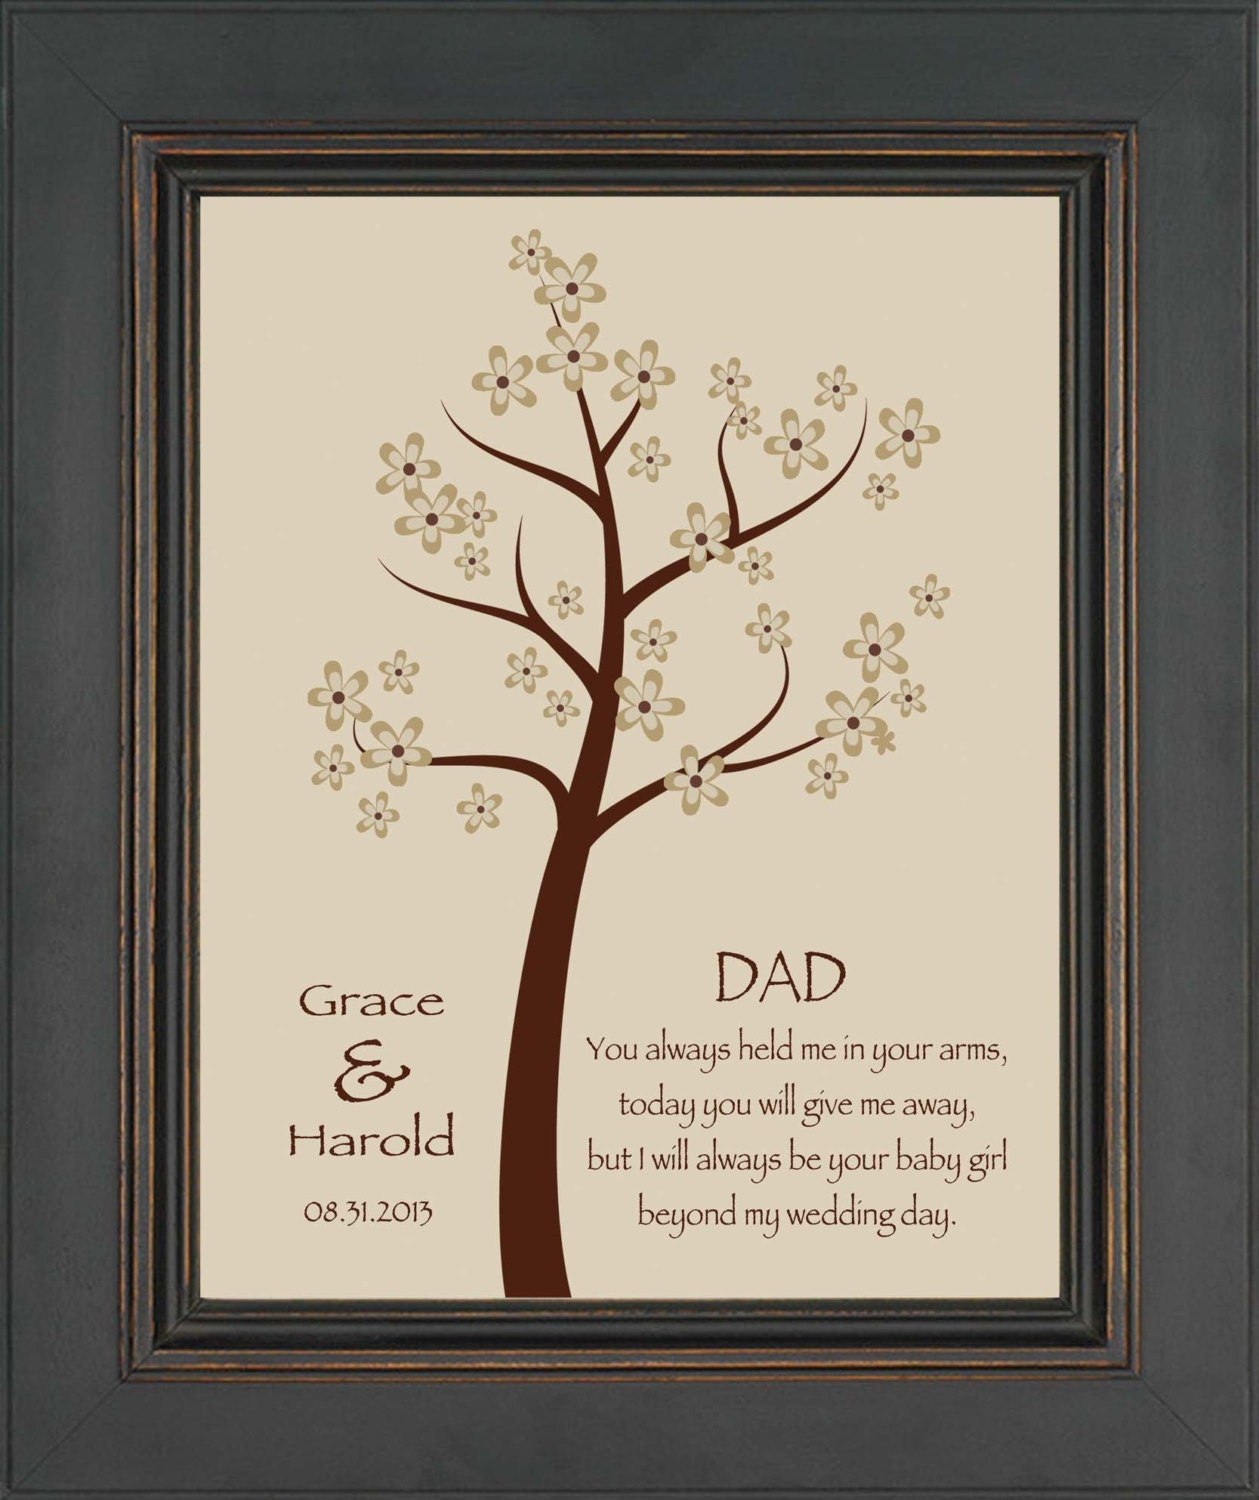 Wedding Gift For Dad From Son : Wedding Gift for DAD from Bride Thank you gift for DAD on